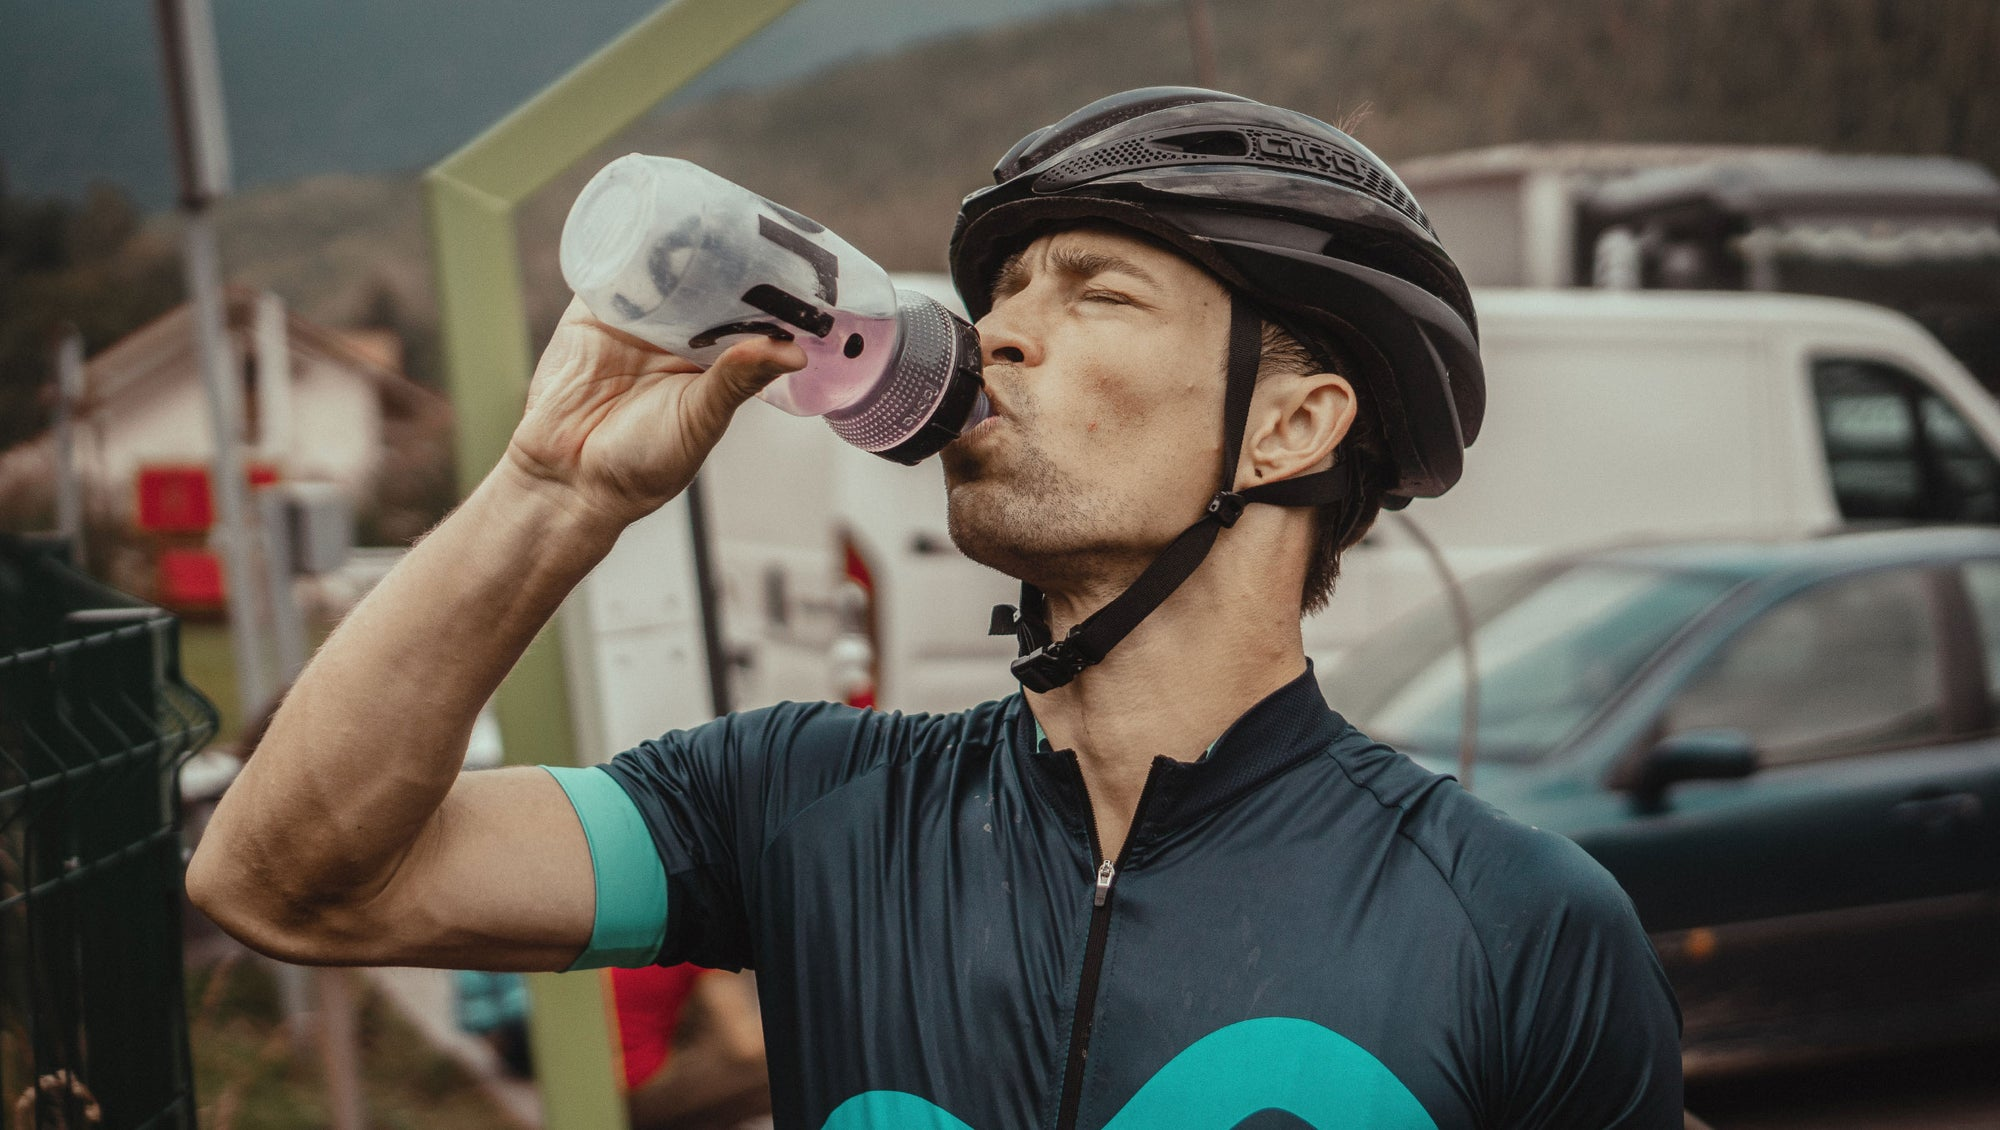 The Truths and Myths About Sports Drinks